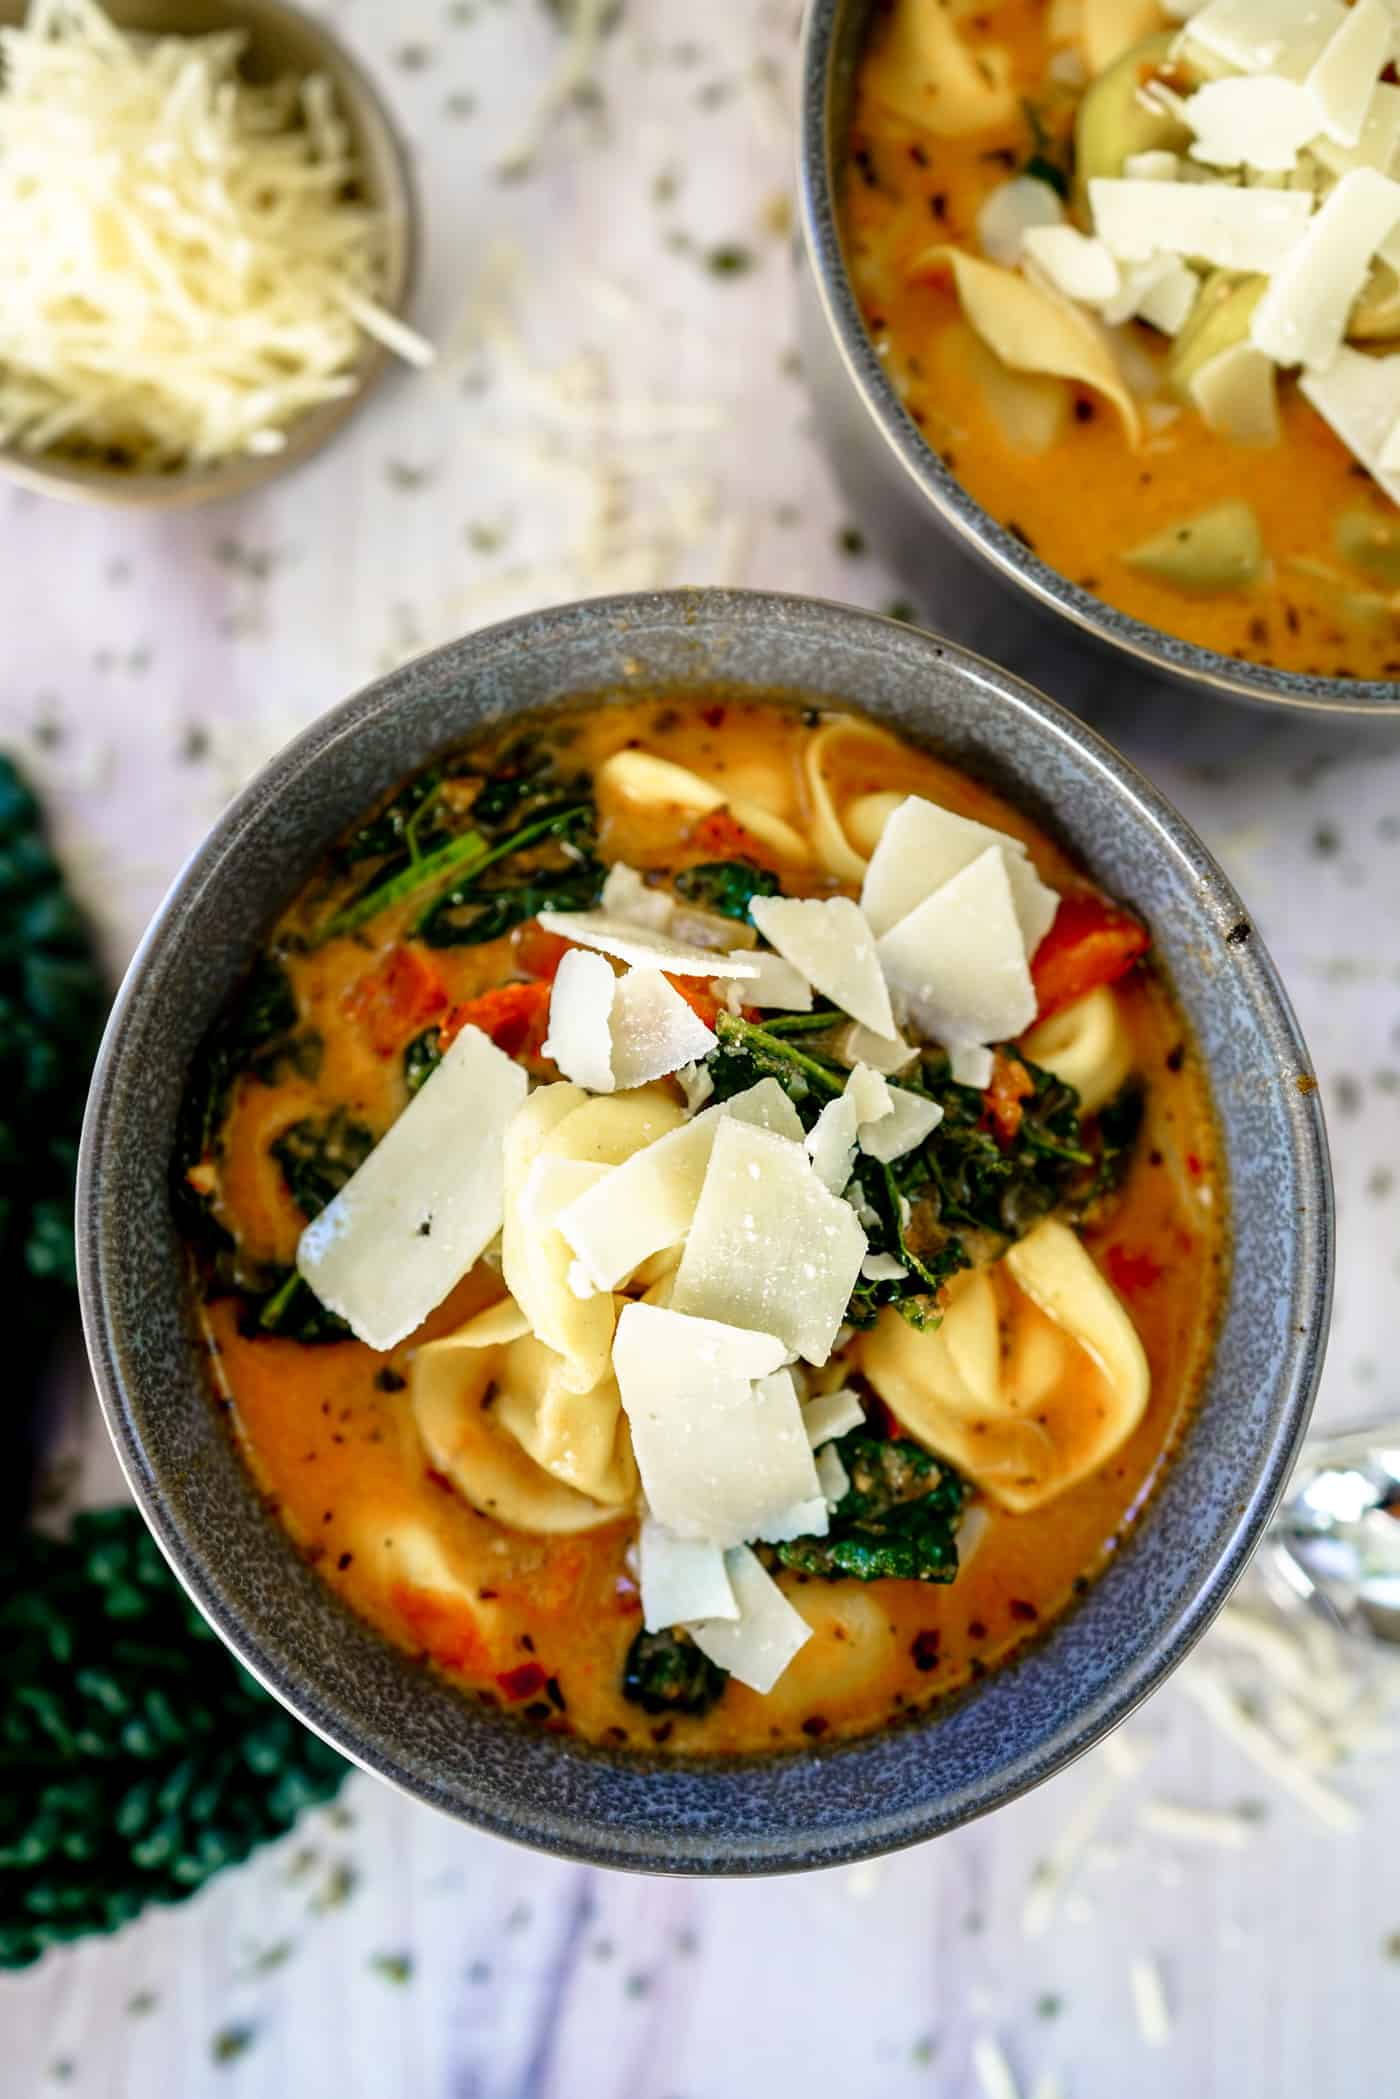 A Lily Love Affair shares a delicious Instant Pot Tortellini Soup recipe topped with parmesan cheese